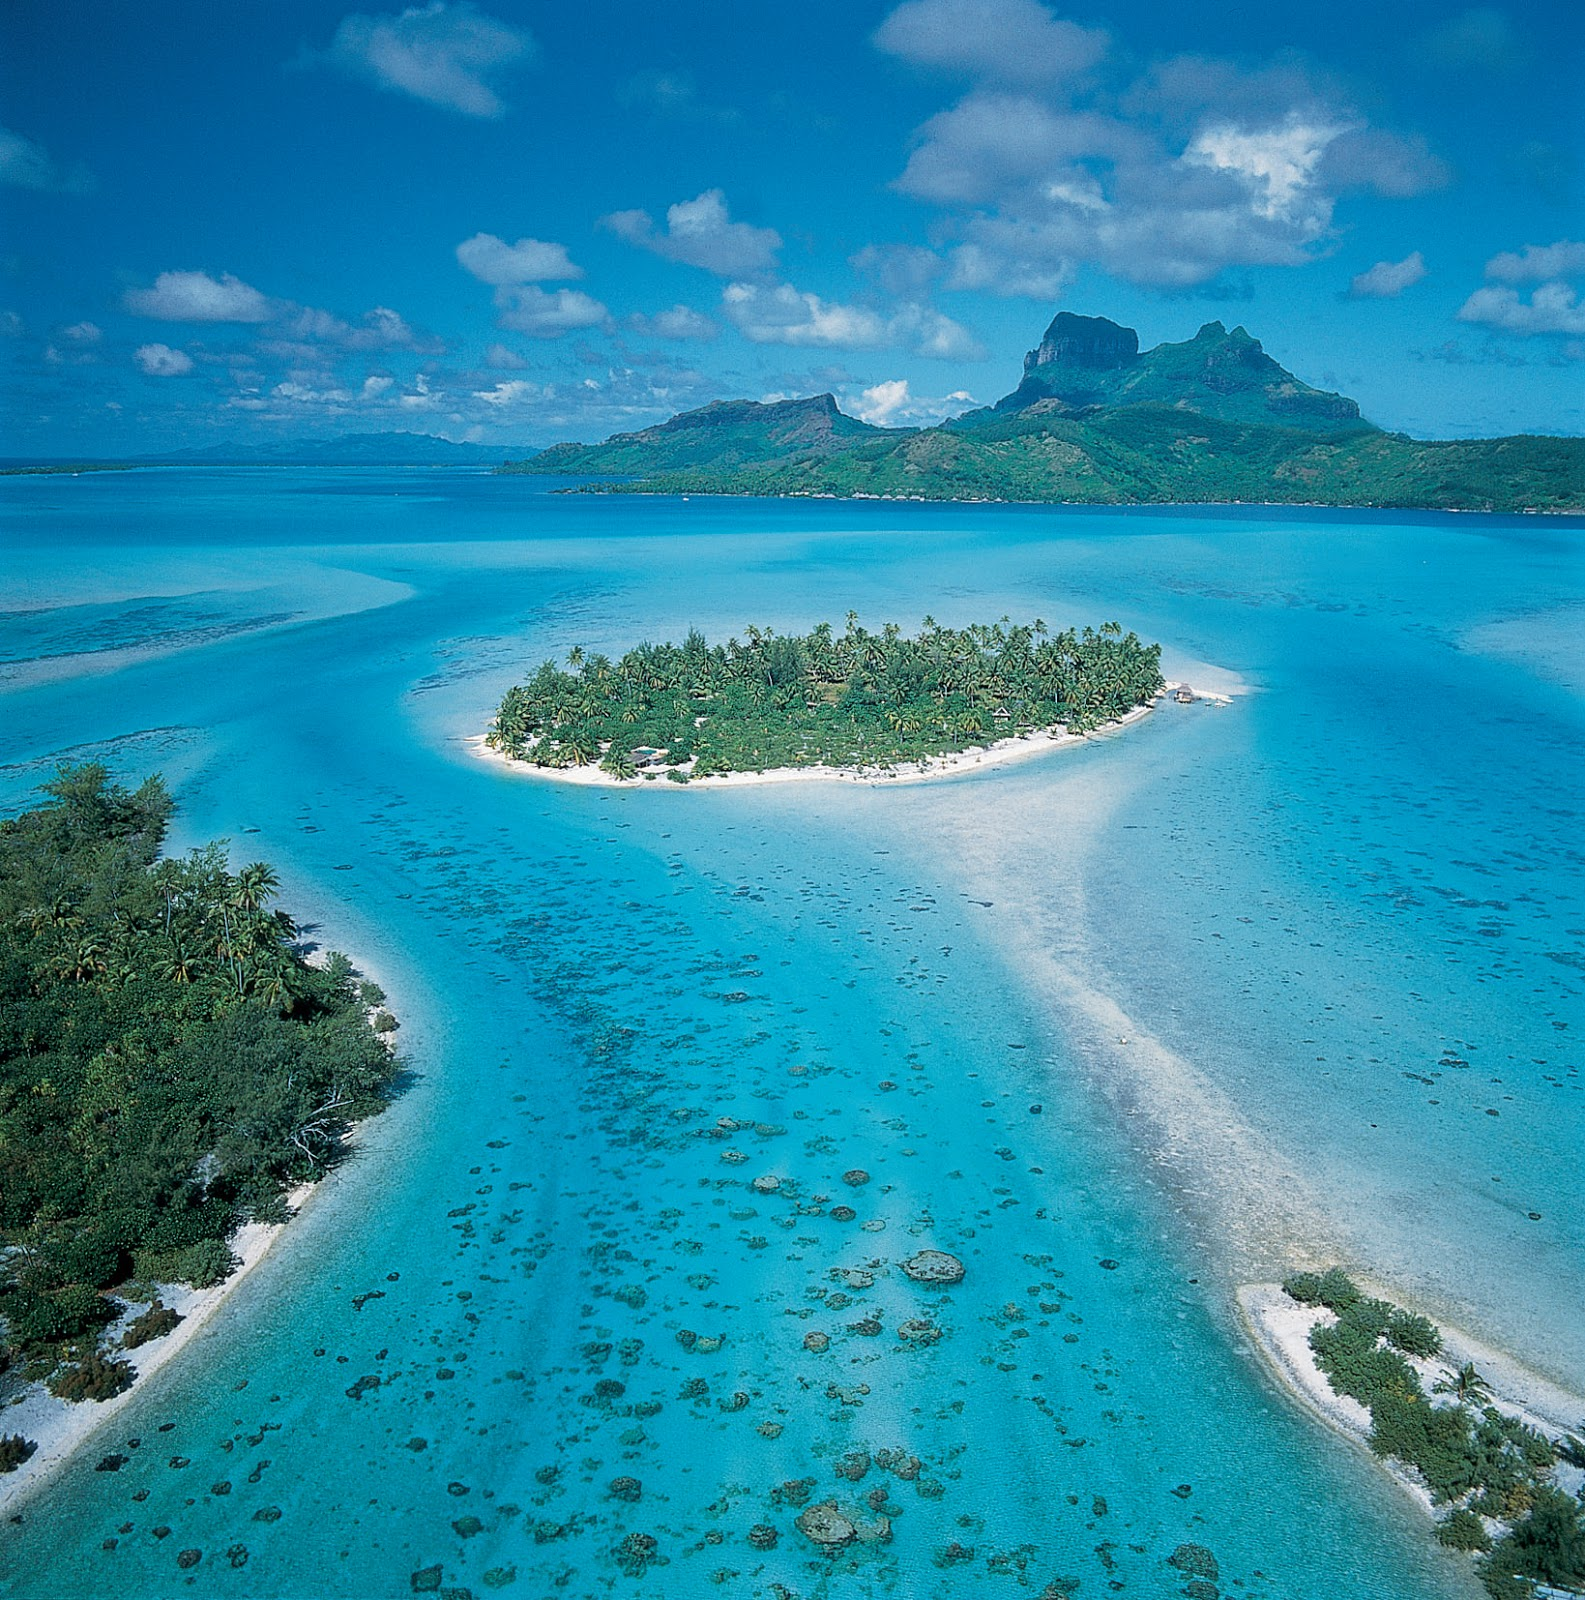 dating in tahiti The beautiful islands of tahiti and polynesia, has anyone been or any suggestions or tips going it alone, maybe any warnings that might be of help or even places i must see.